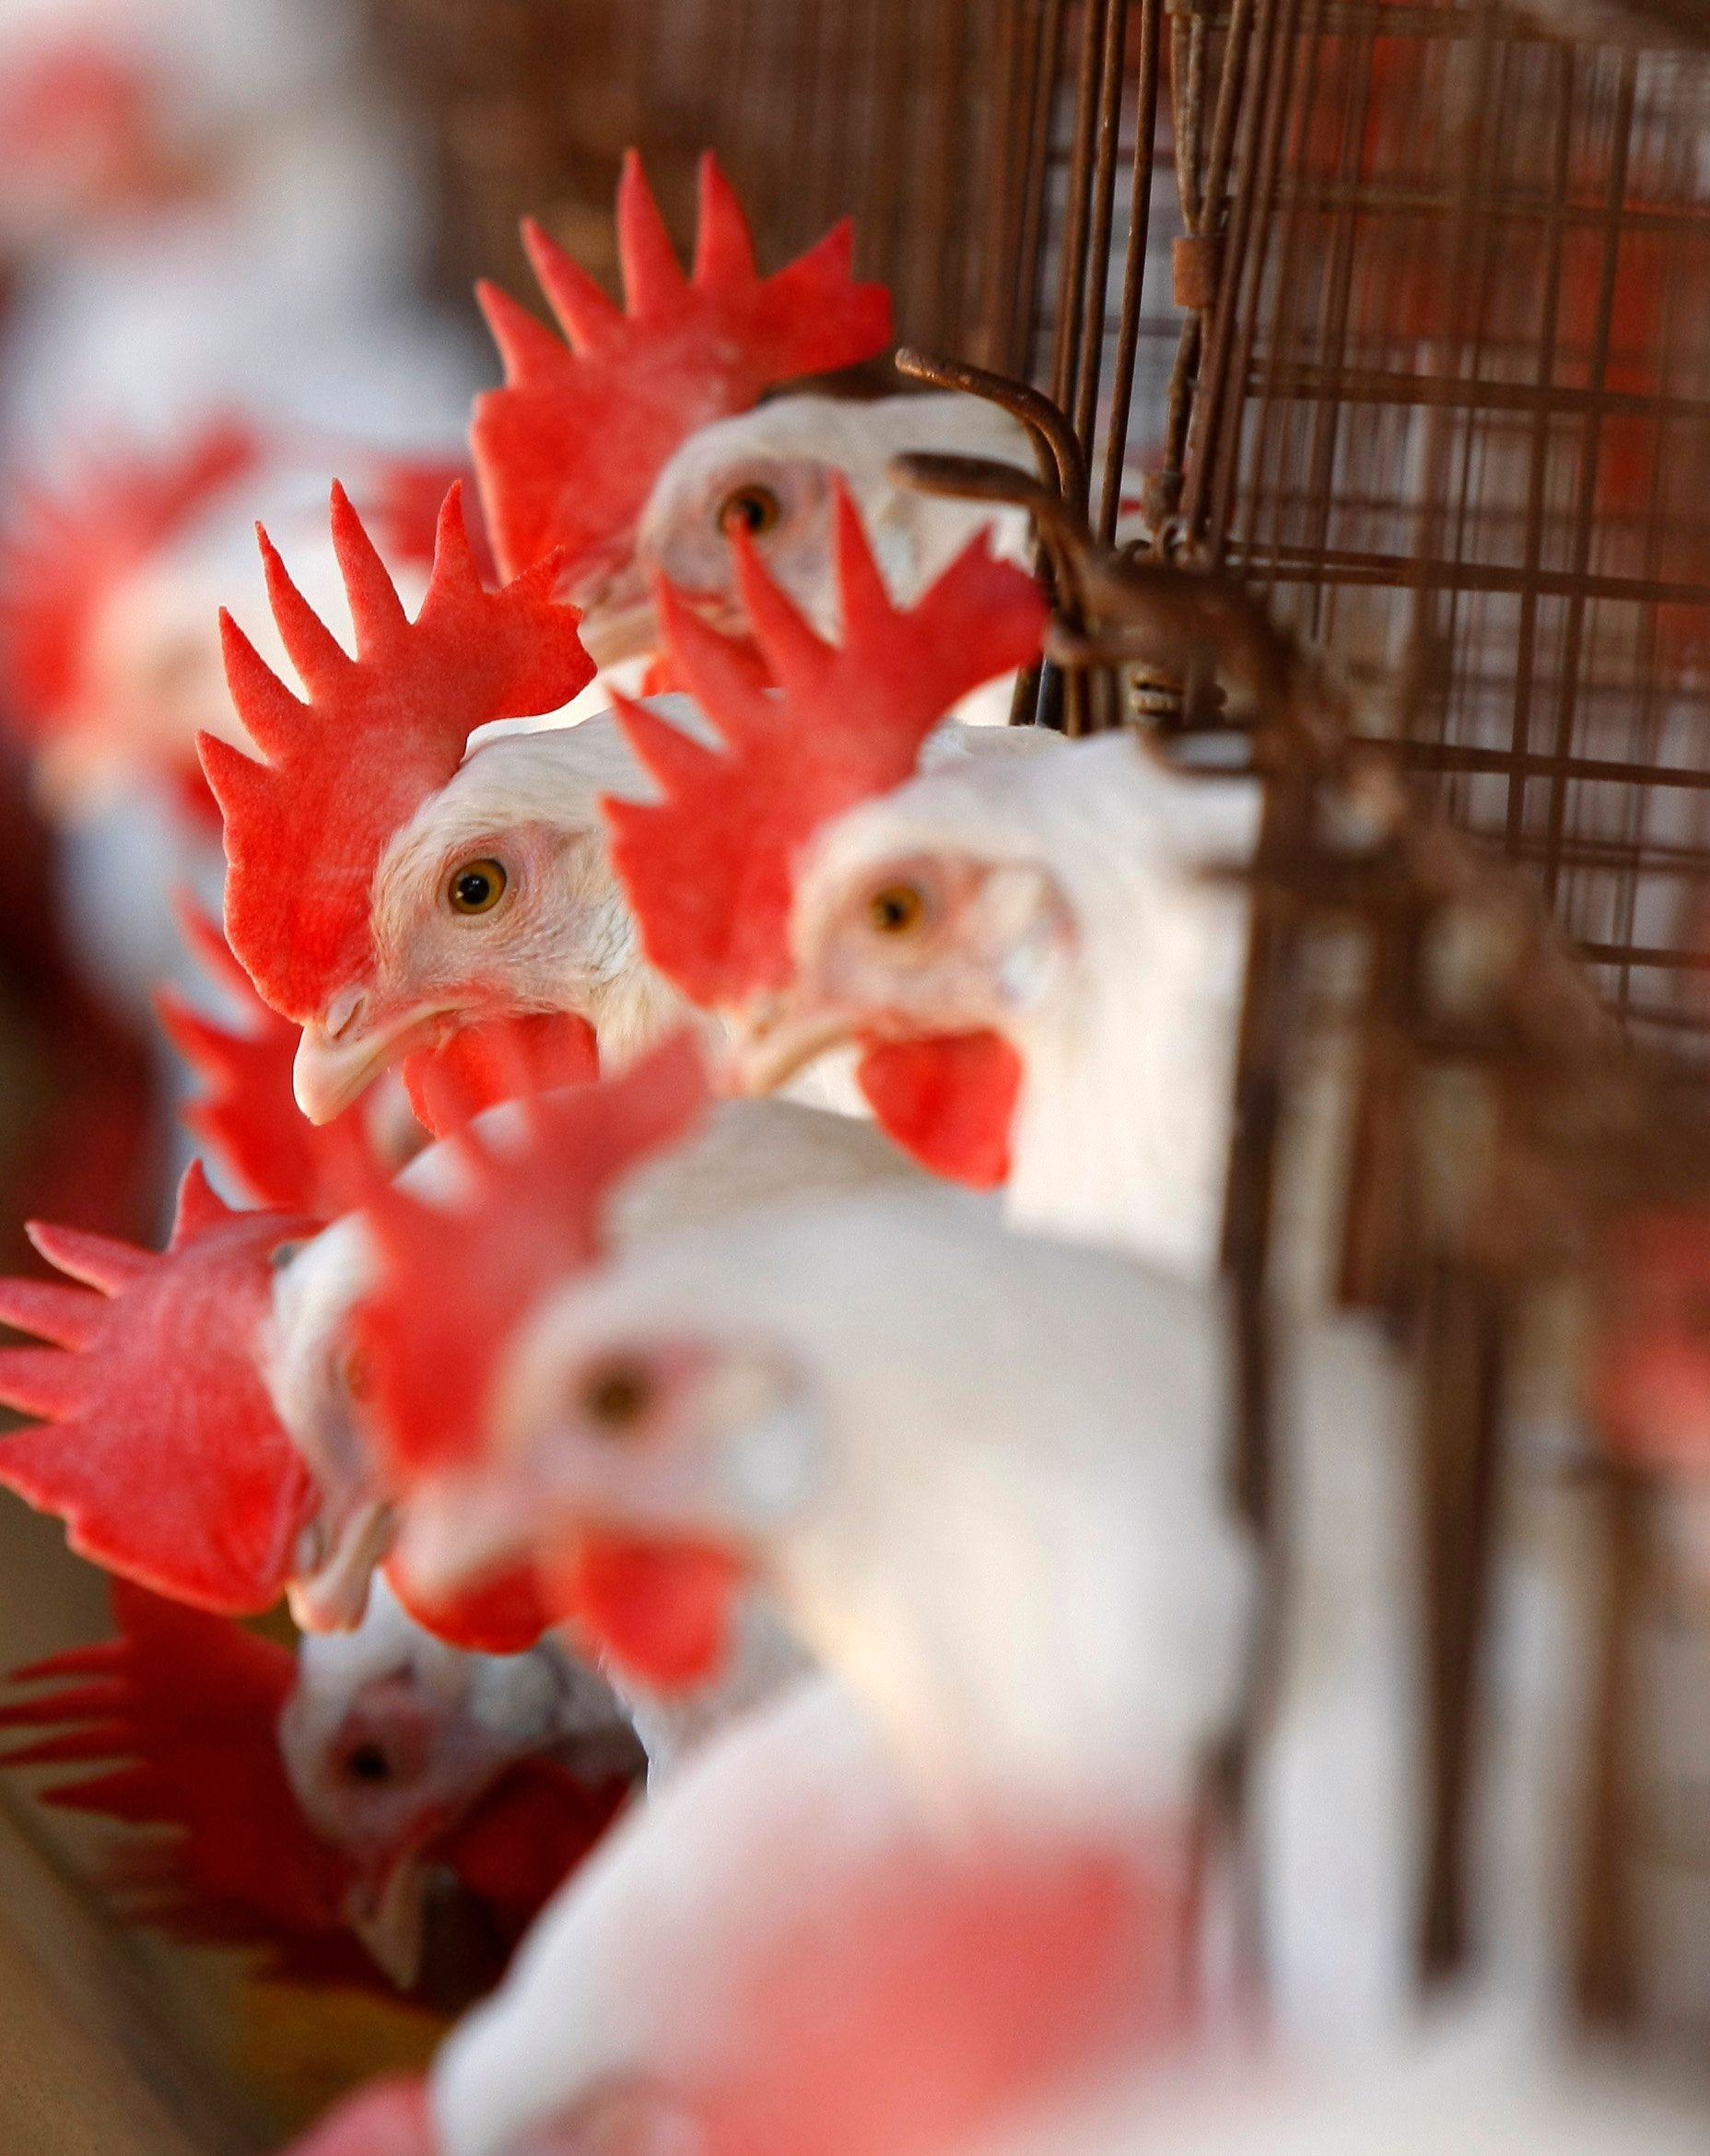 Hens in battery cages at a San Diego County egg farm in 2008.